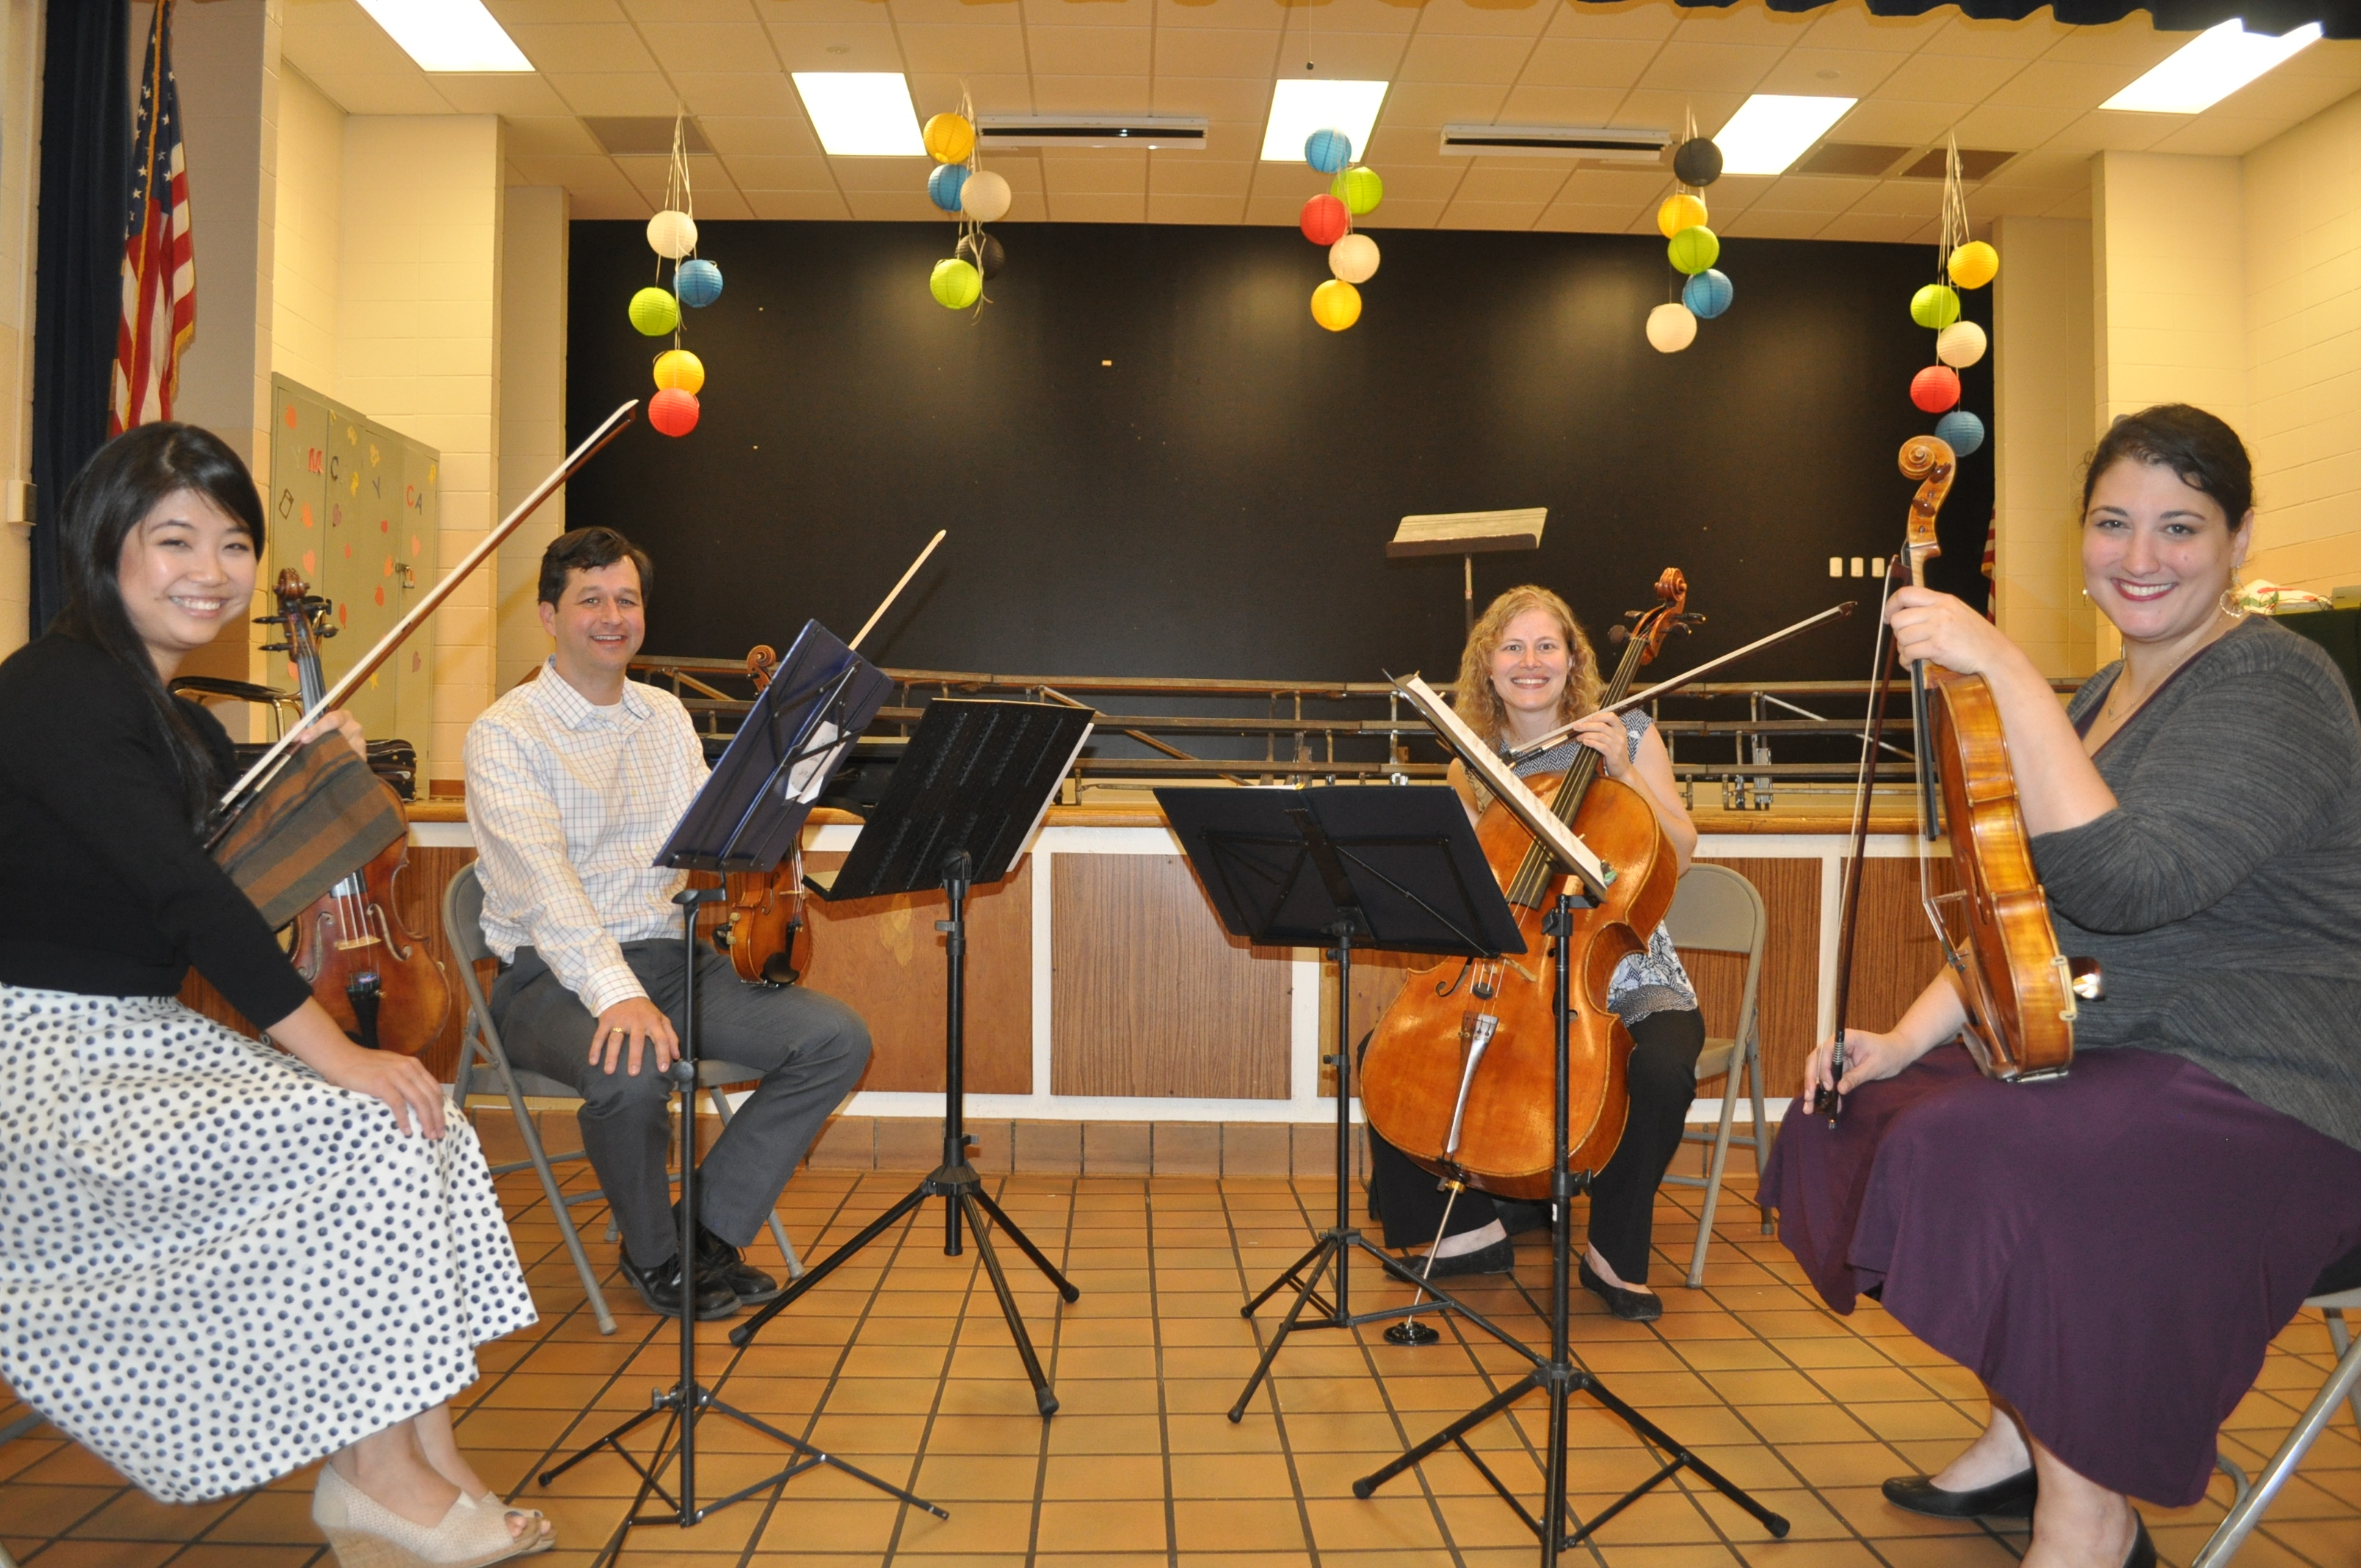 Four musicians playing stringed instruments